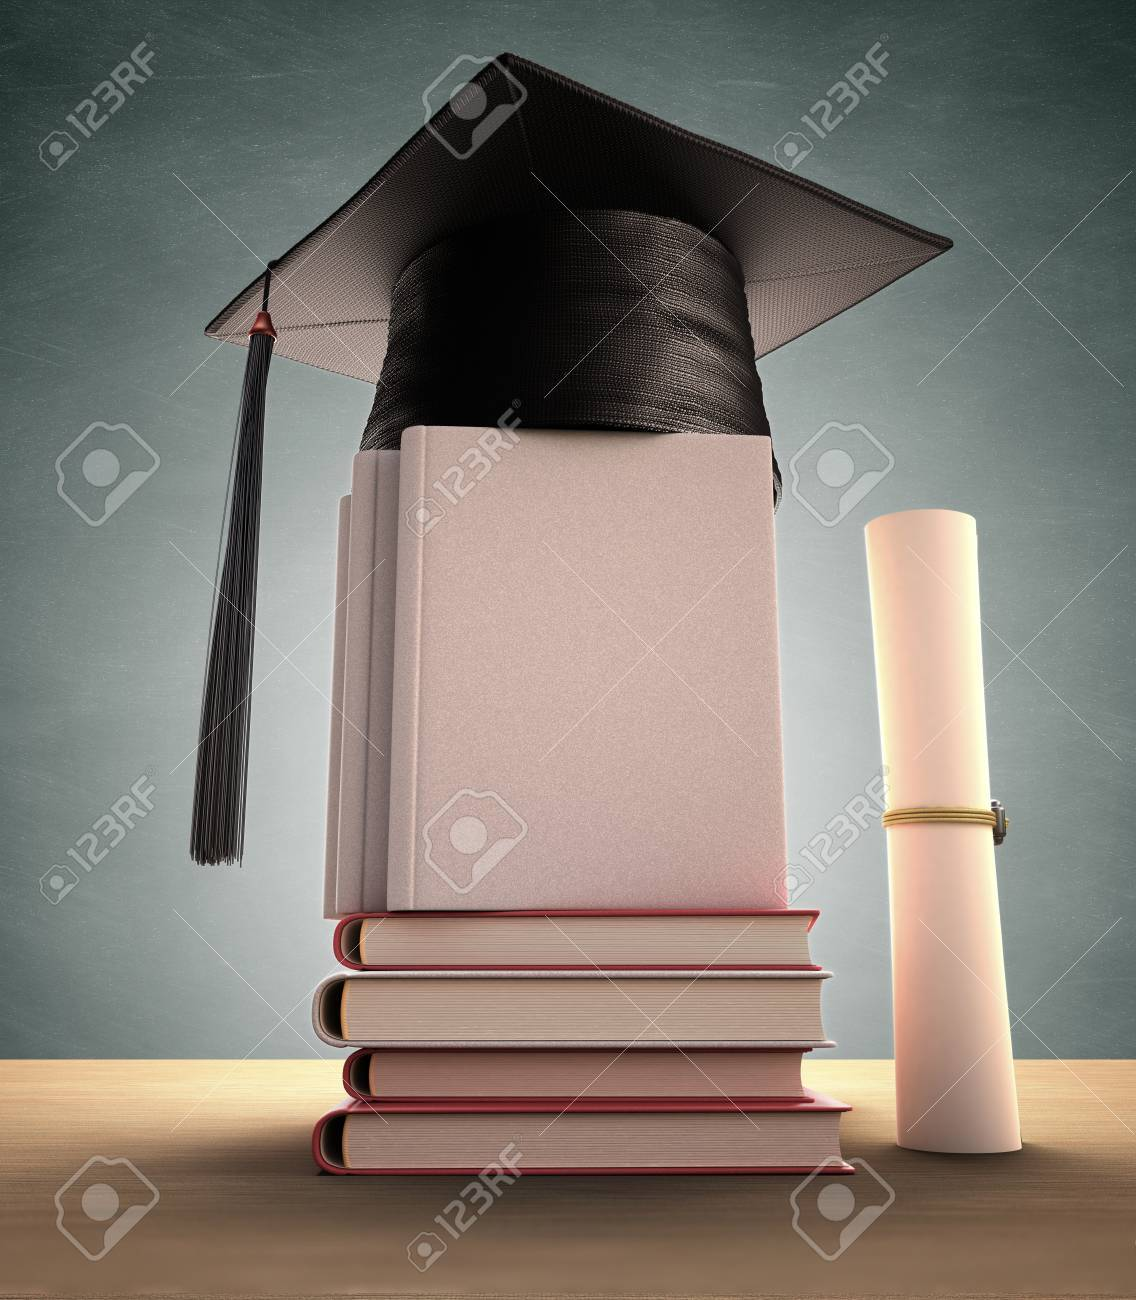 Graduation cap over the pile of books. Your image or text on the cover book. Clipping path included. - 27430585